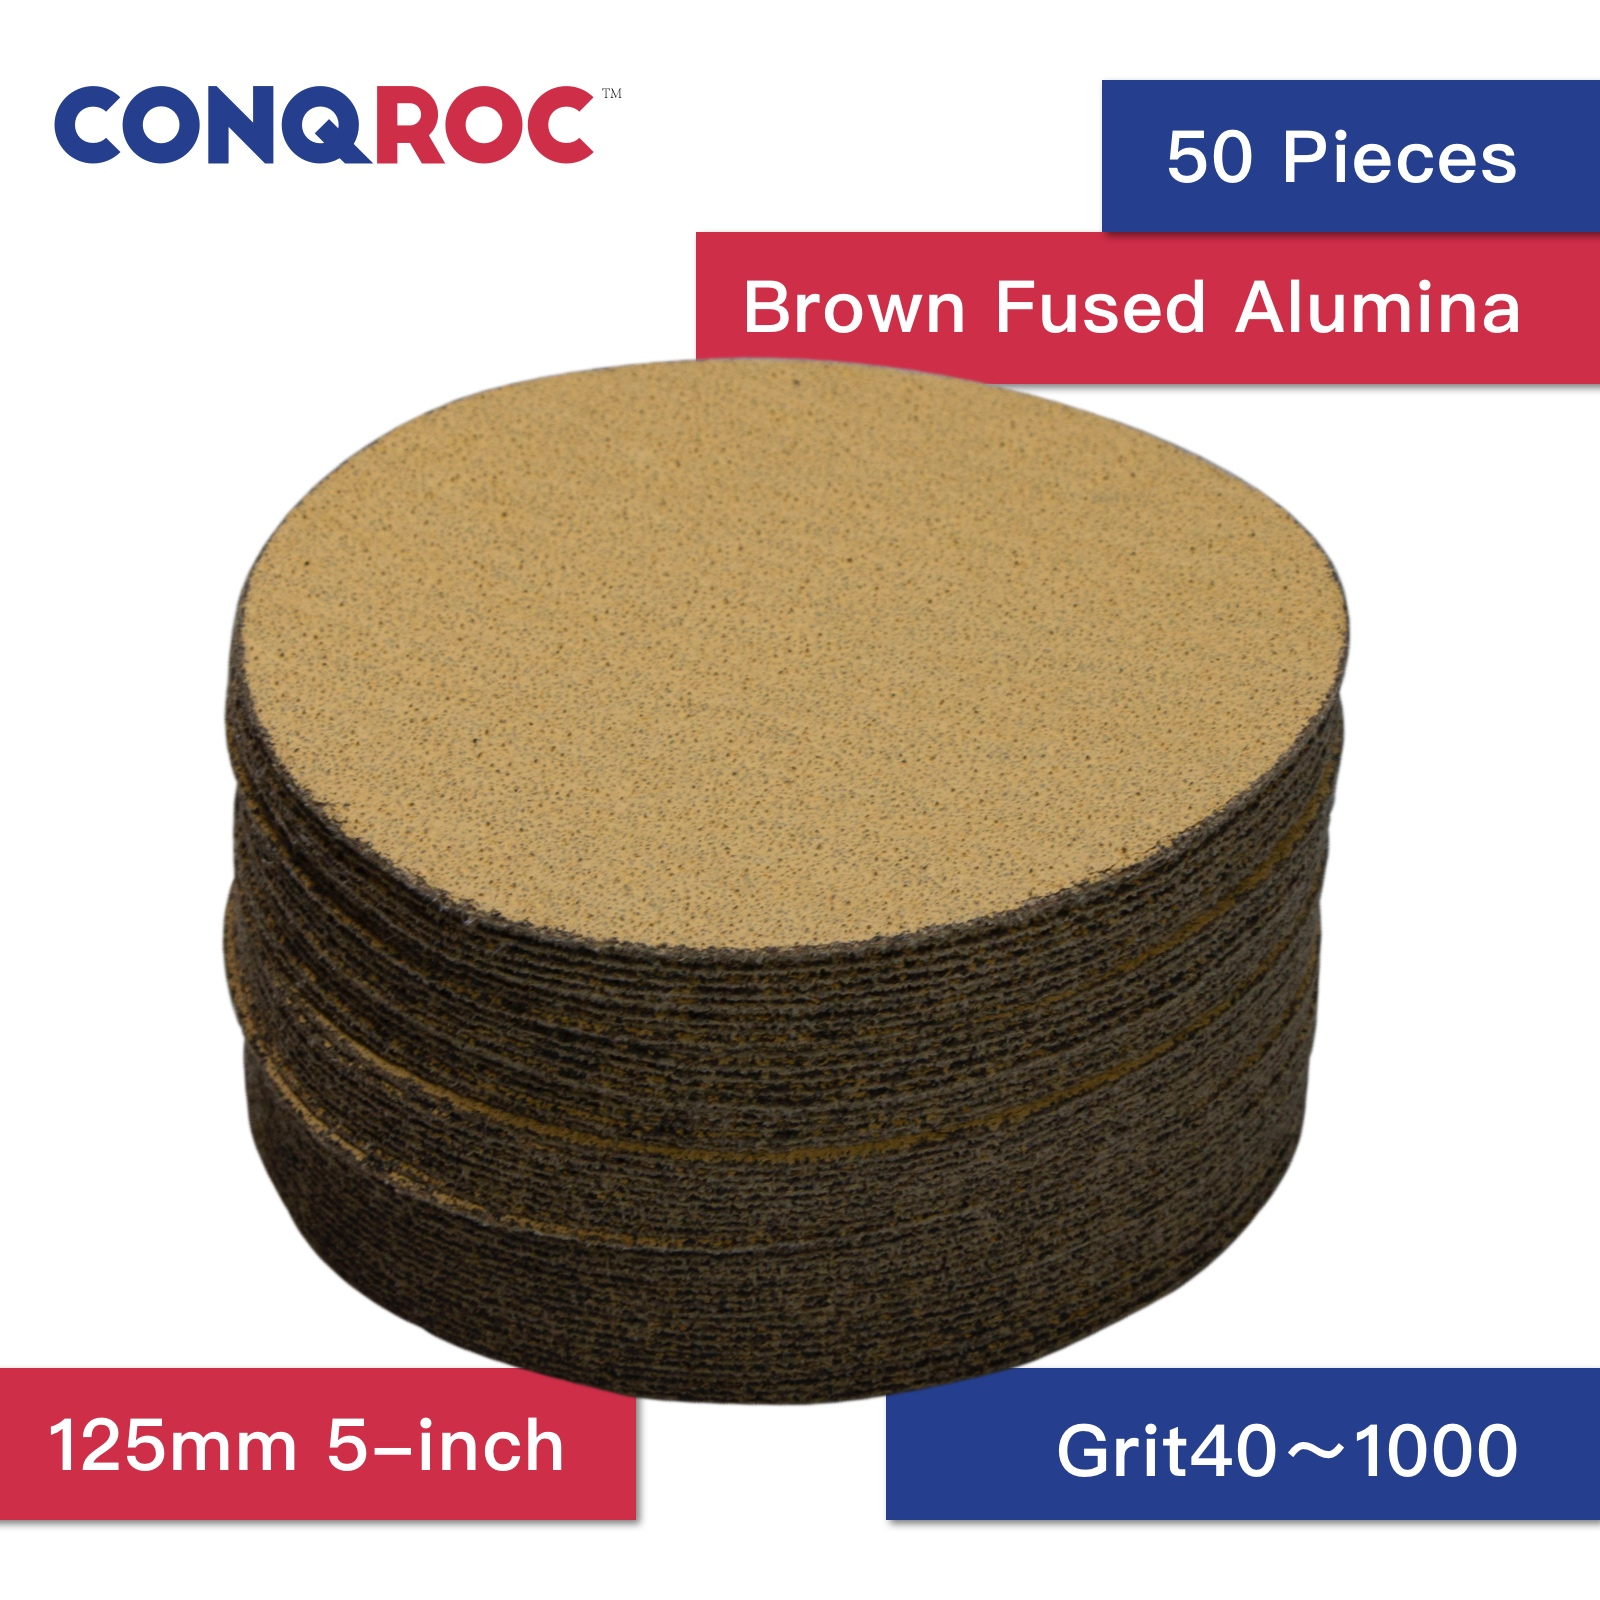 50 Pieces 125mm 5-inch Dry Sanding Discs Yellow Sanding Paper Hook And Loop Sandpaper For Wood Car Metal Polishing